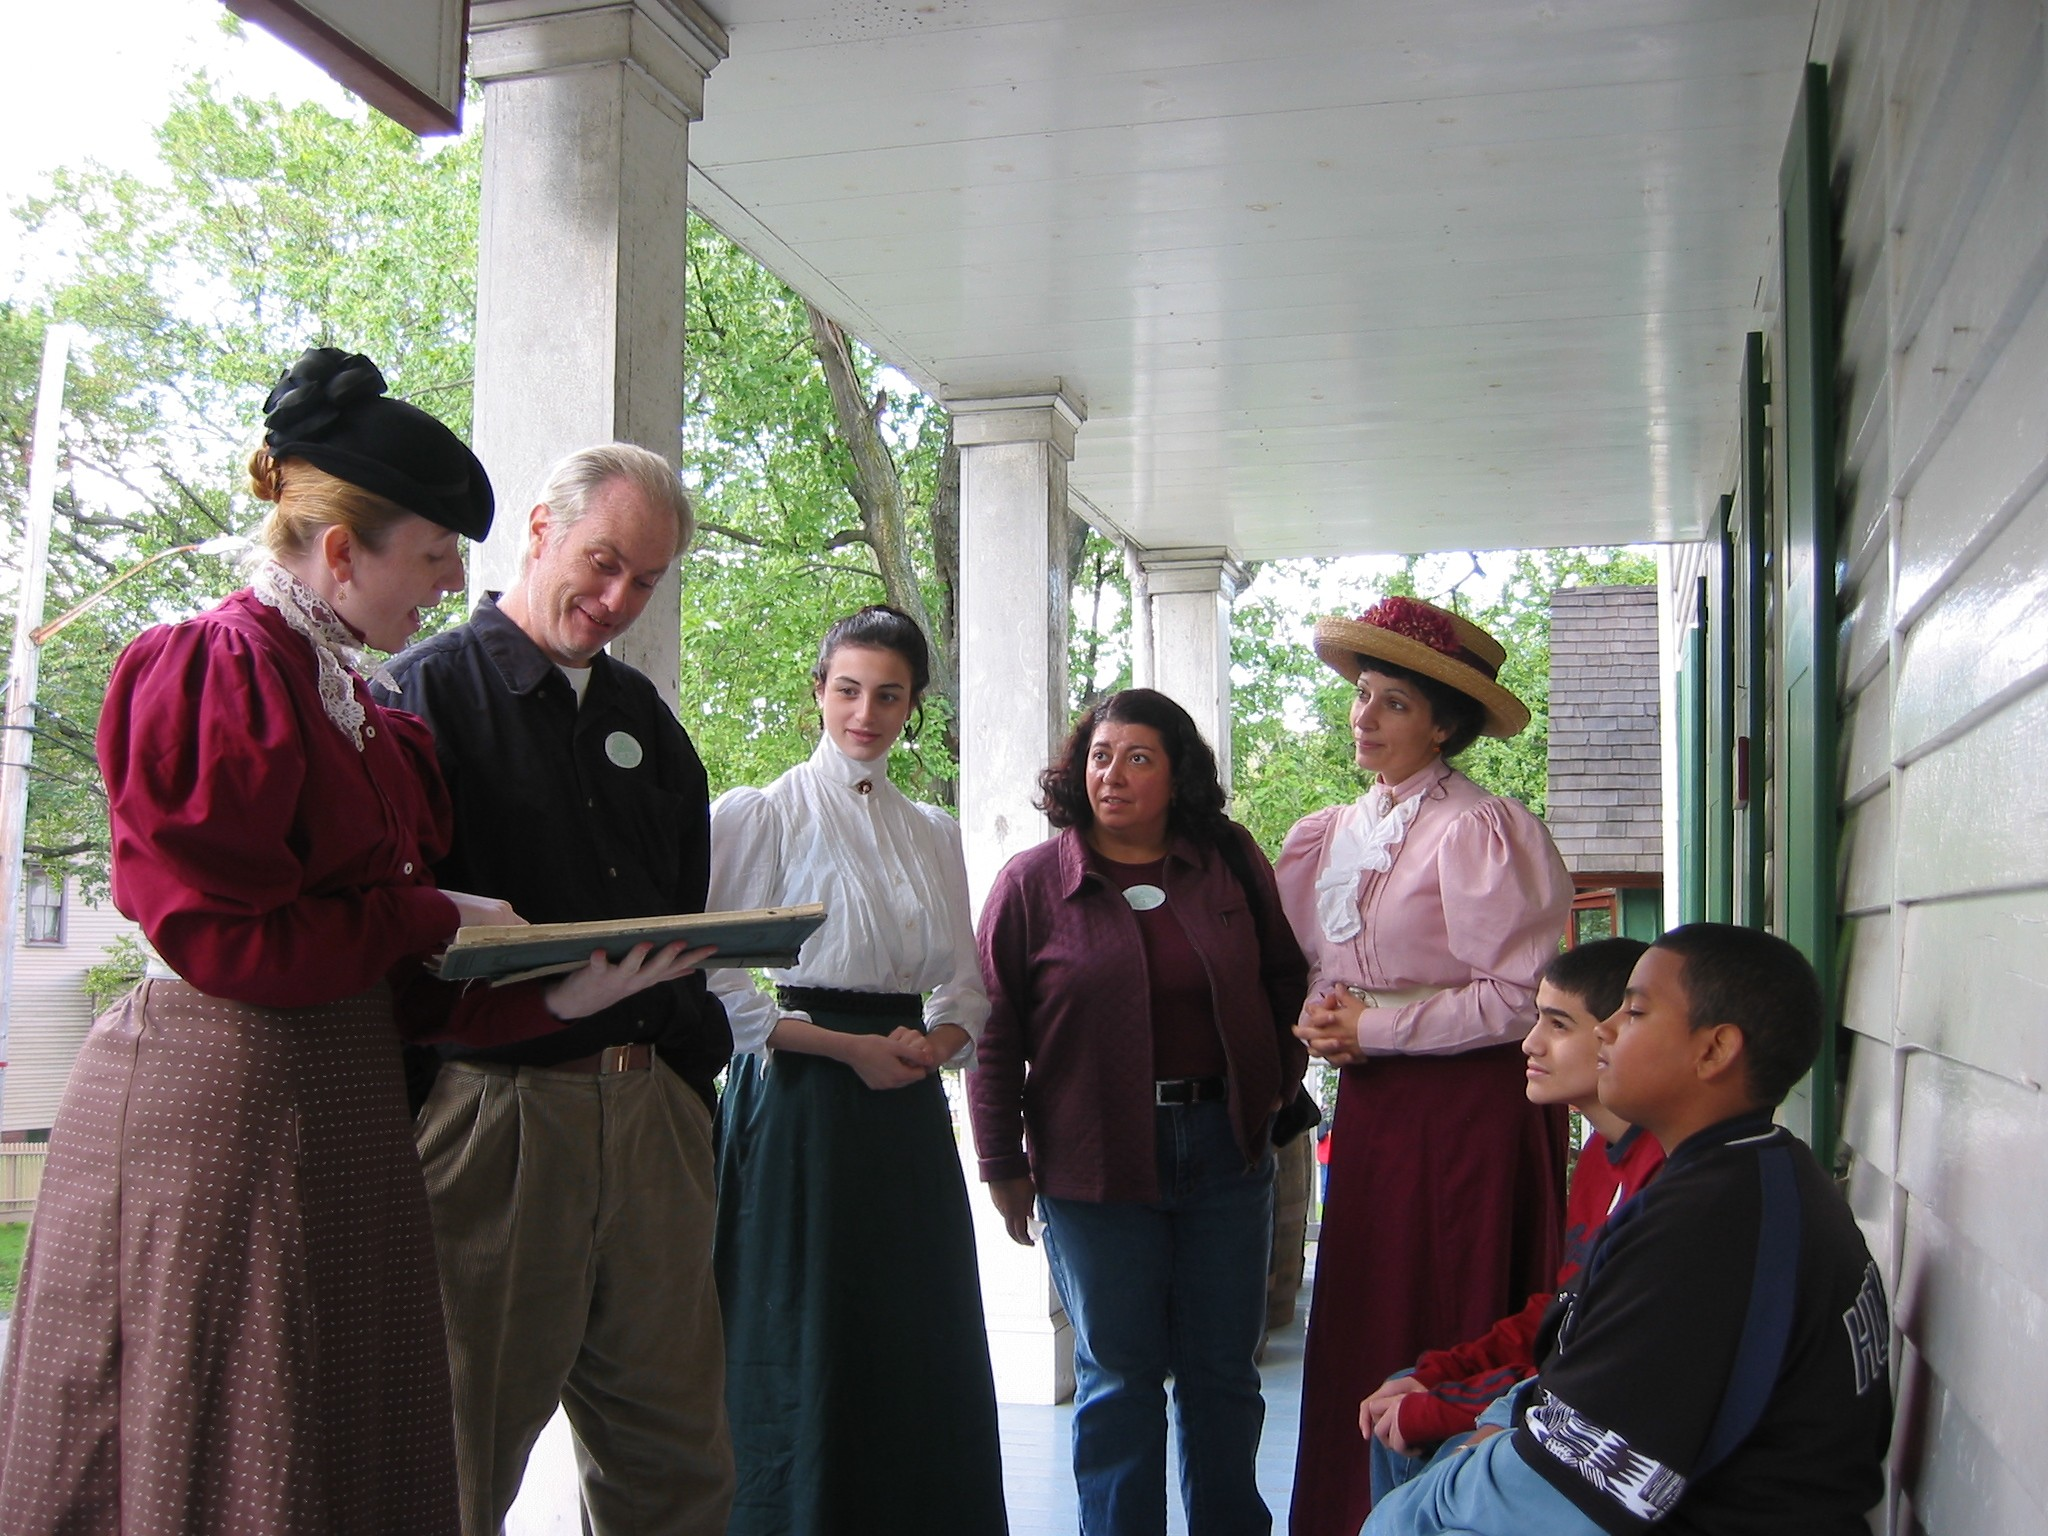 Black Sisters on Store Porch with Famly.jpg